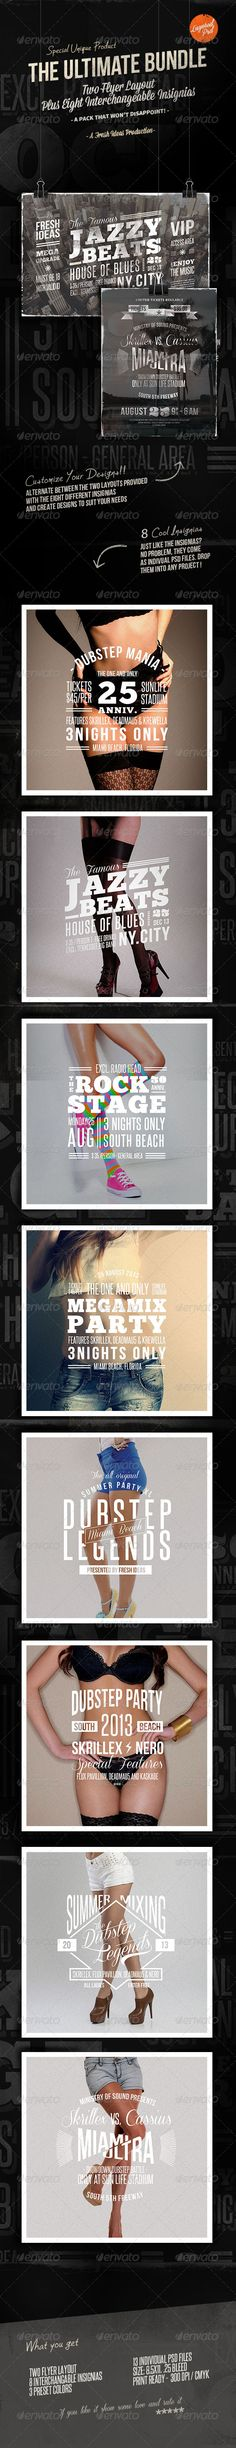 The Ultimate Bundle : Flyers / Insignias  #GraphicRiver           The Ultimate Bundle: Flyers / Insignias  In this bundle you'll find unified our last 2 collections (Vintage Set Vol.1 and Vintage Set Vol.2. It's made of five flyer layouts with three preset vintage colours, one frame design, and eight interchangeable insignias.  These insignias have been designed to make up the heart of the flyers. You just have to drop them on each layout to get a multitude of variations. So included in…